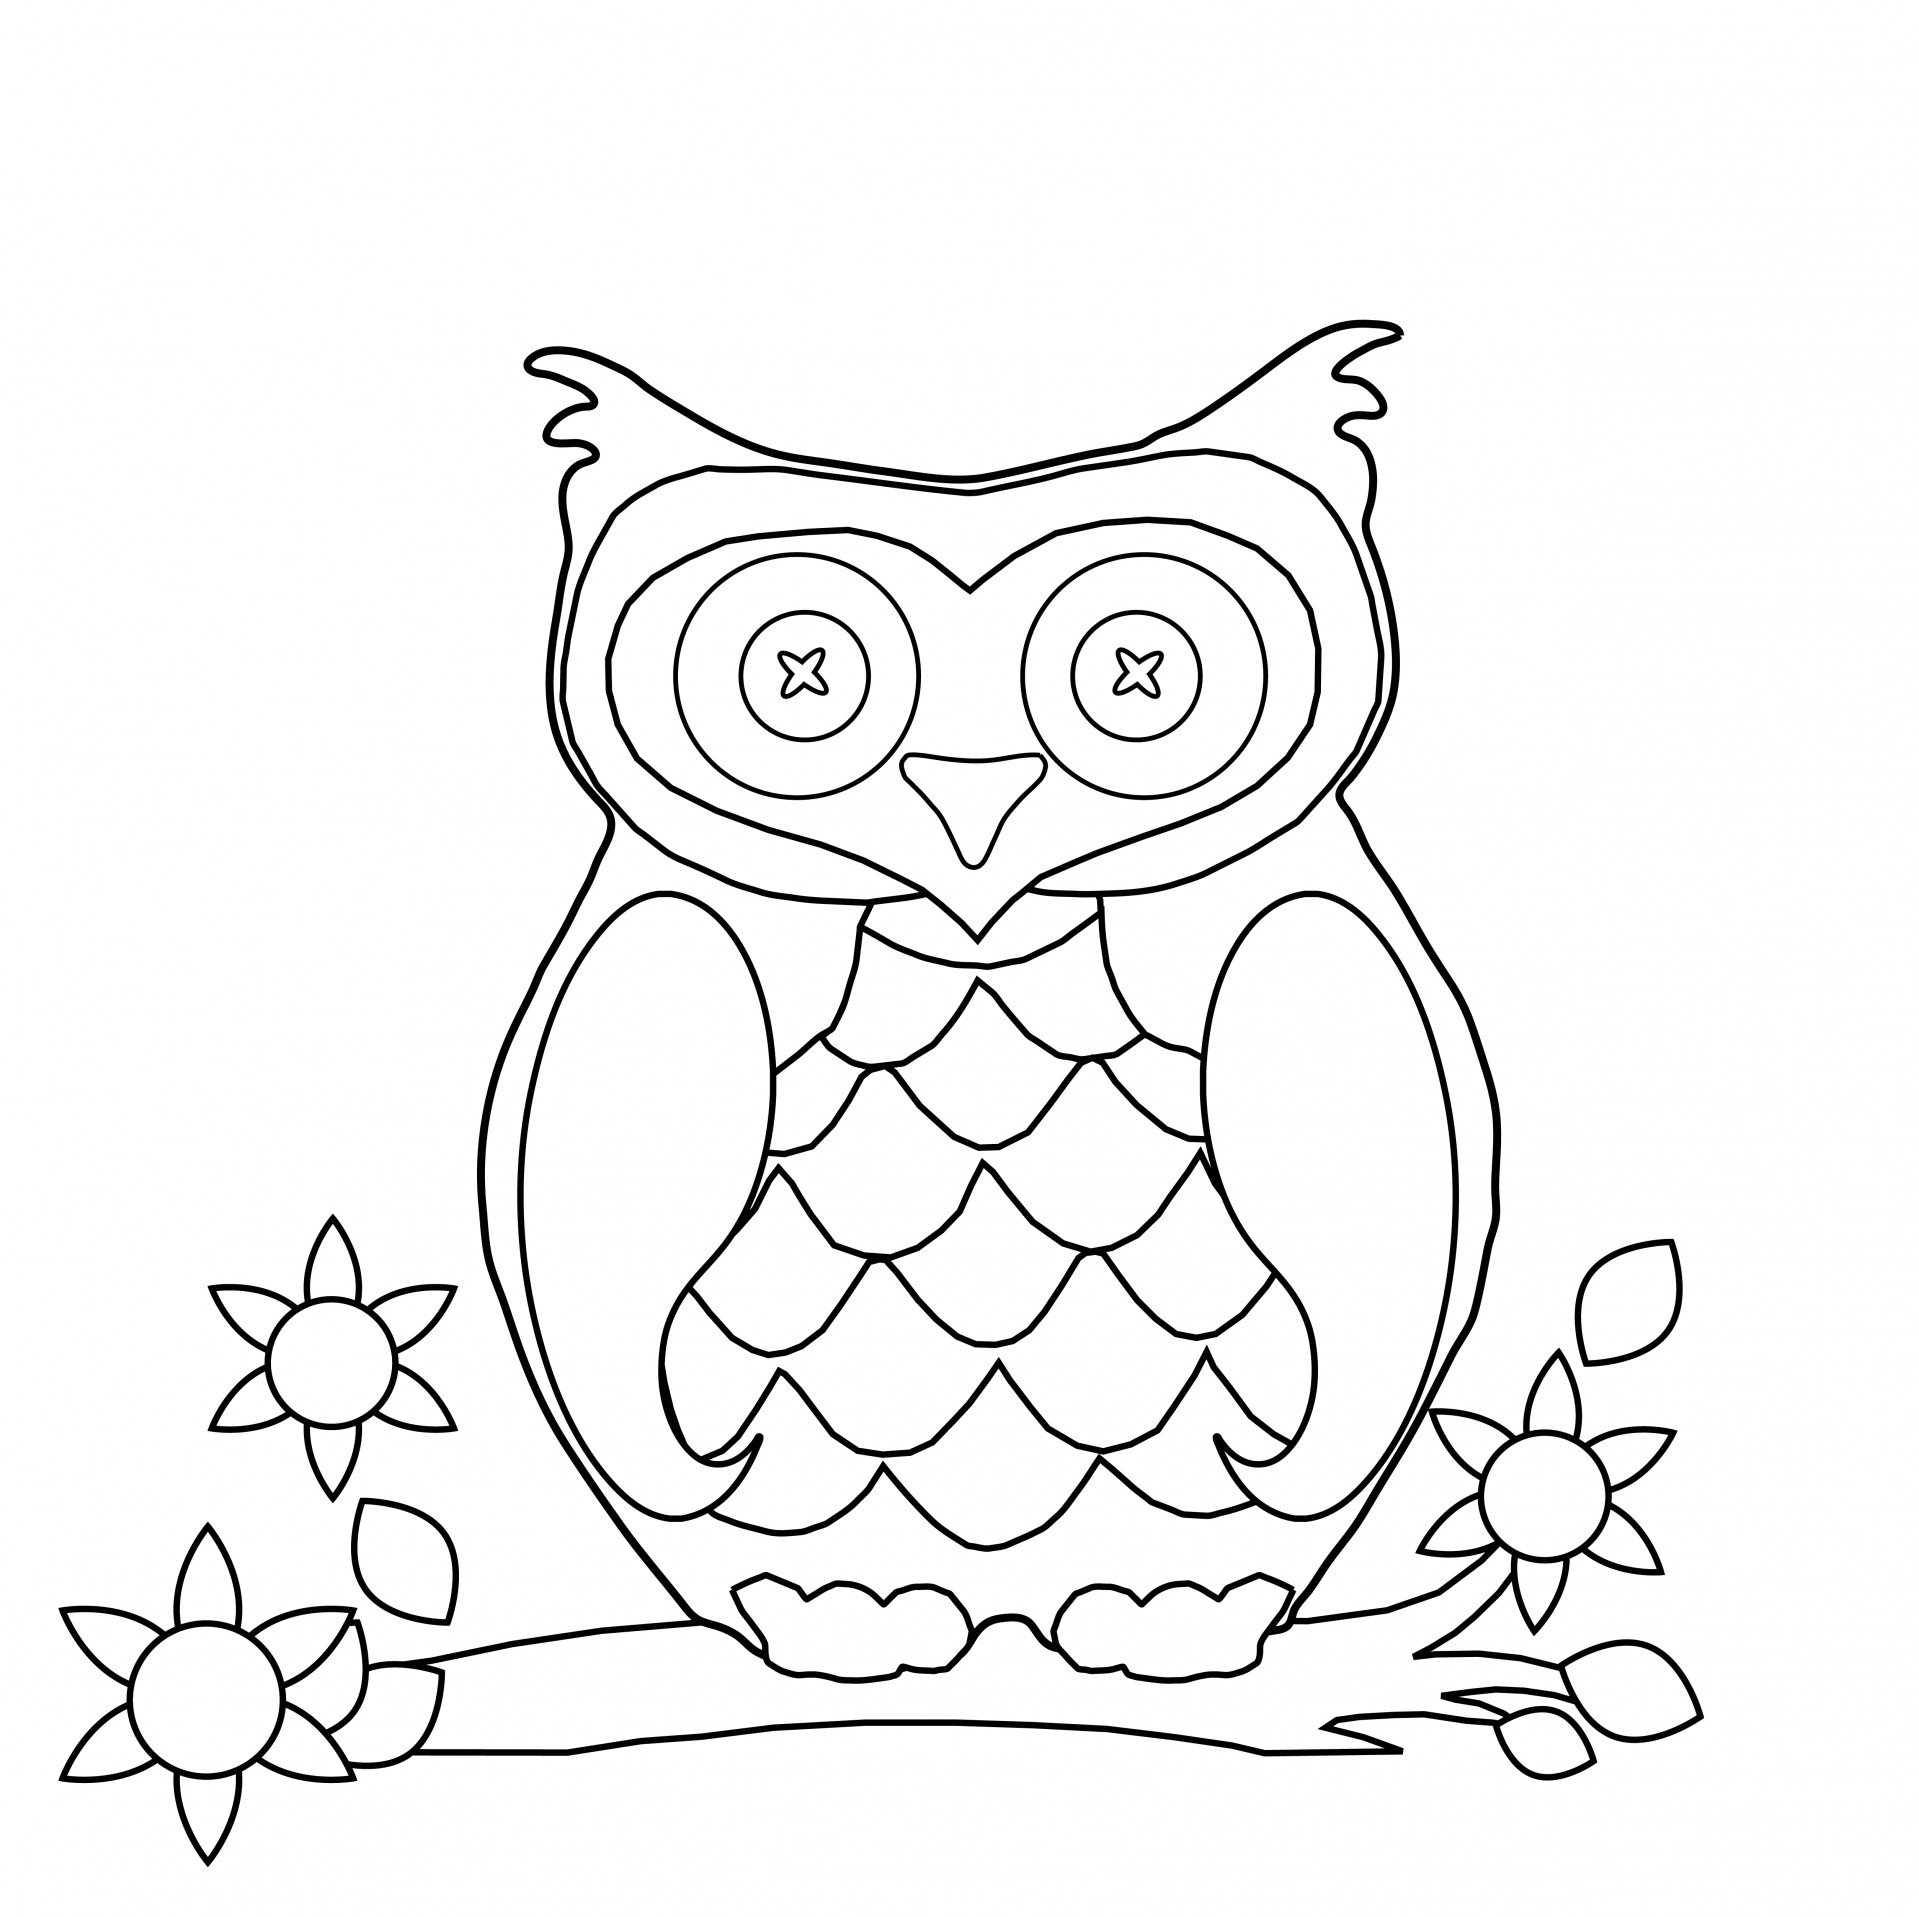 coloring picture to print free printable bambi coloring pages for kids to print coloring picture